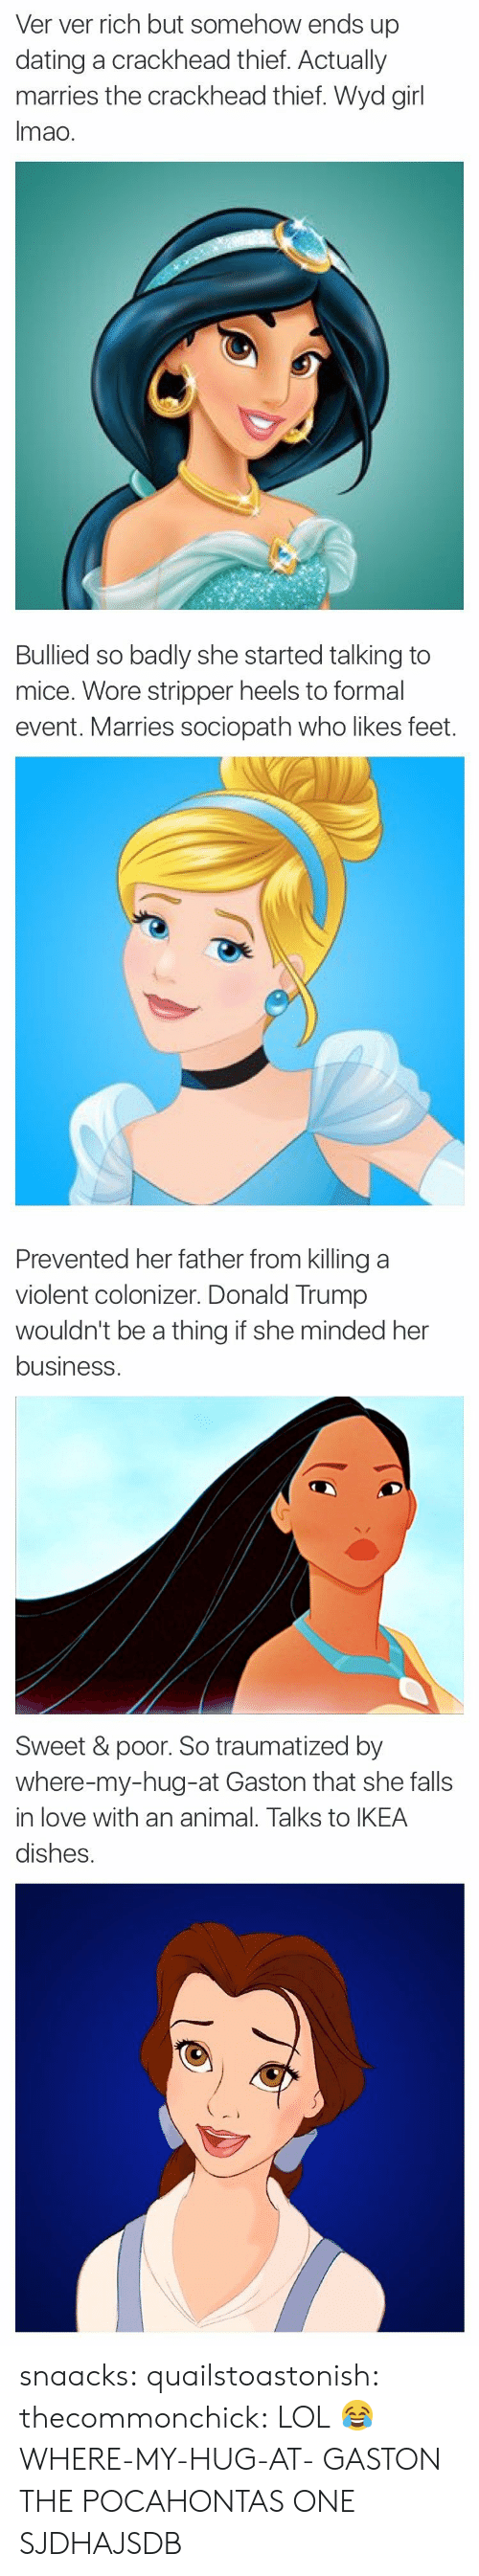 Crackhead, Dating, and Donald Trump: Ver ver rich but somehow ends up  dating a crackhead thief. Actually  marries the crackhead thief. Wyd girl  Imao.   Bullied so badly she started talking to  mice. Wore stripper heels to formal  event. Marries sociopath who likes feet.   Prevented her father from killing a  violent colonizer. Donald Trump  wouldn't be a thing if she minded her  business   Sweet & poor. So traumatized by  where-my-hug-at Gaston that she falls  in love with an animal. Talks to IKEA  dishes. snaacks:  quailstoastonish: thecommonchick:  LOL😂   WHERE-MY-HUG-AT- GASTON   THE POCAHONTAS ONE SJDHAJSDB